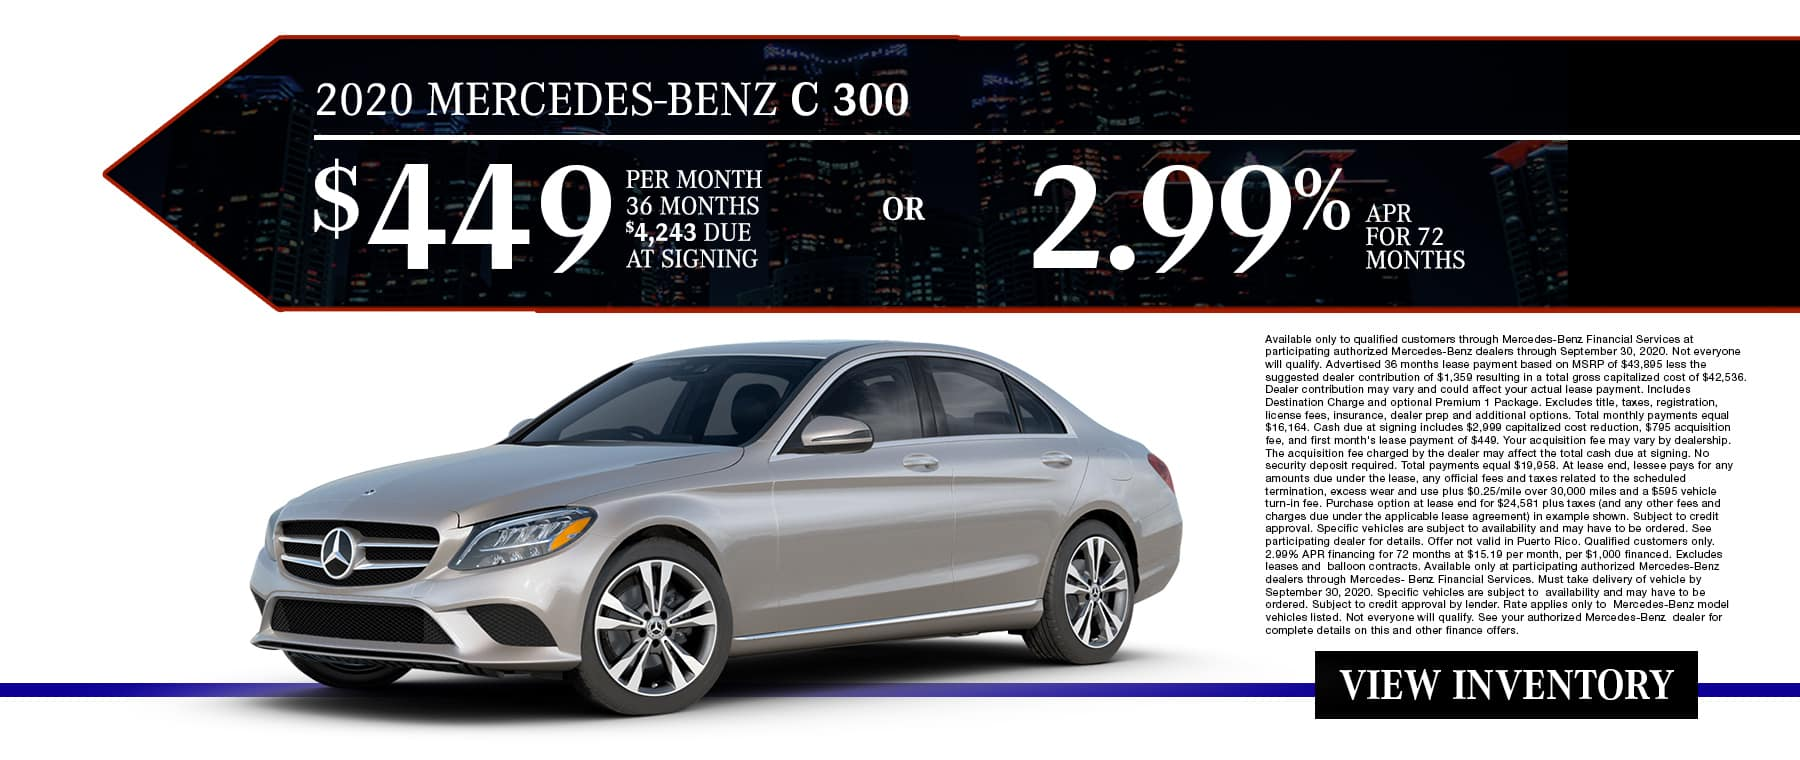 New 2020 Mercedes-Benz C 300 | $449/Mo for 36 Months With $4,243 Due At Signing OR 2.99% APR For 72 Months